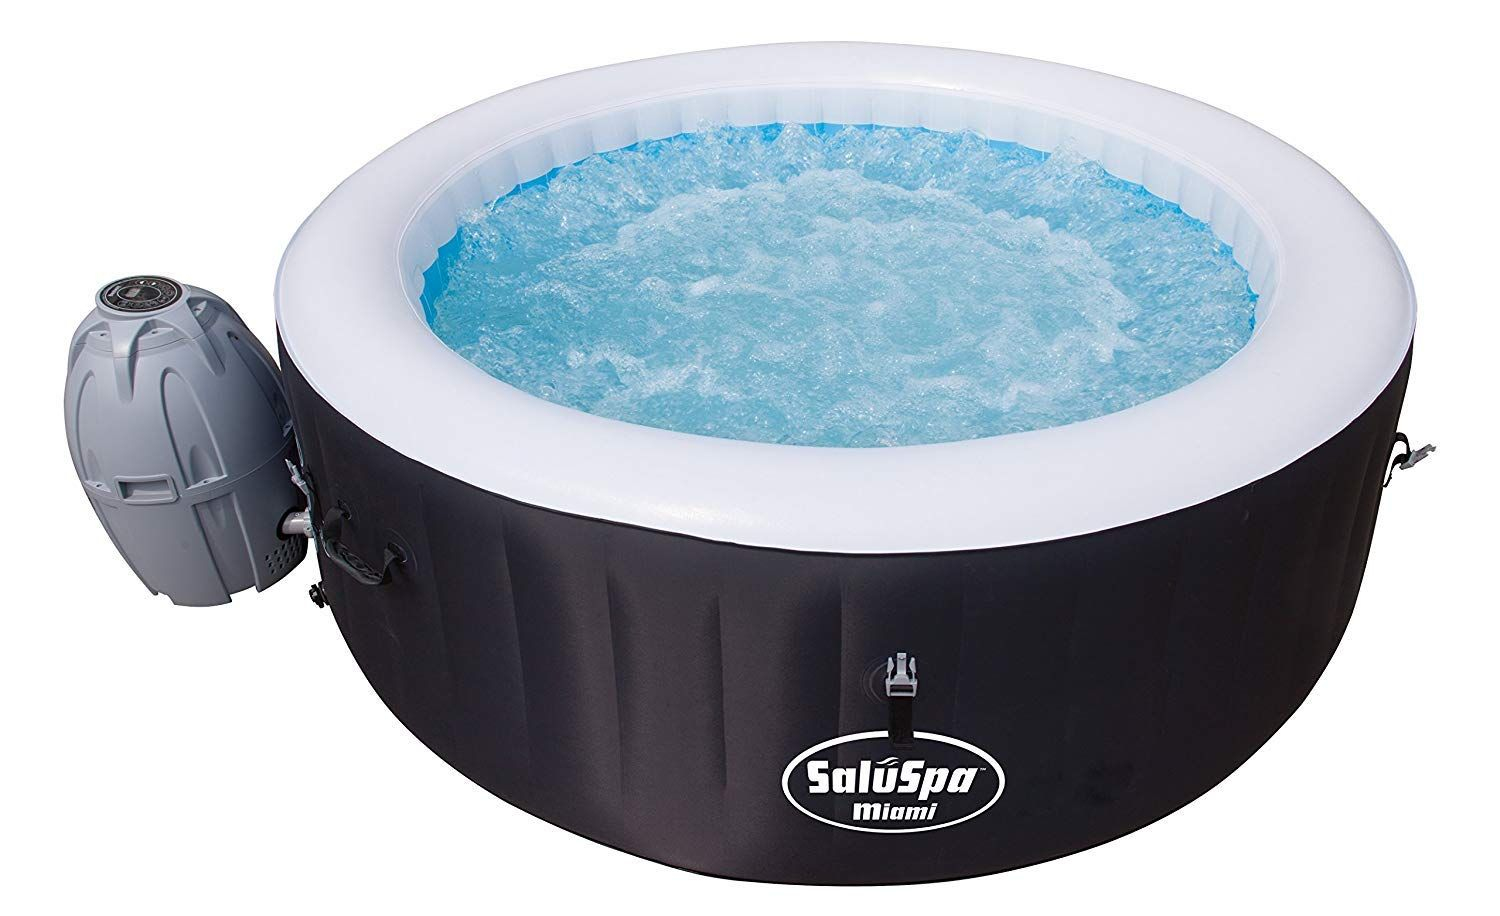 10 Best Inflatable Hot Tub Reviews in 2020 Inflatable